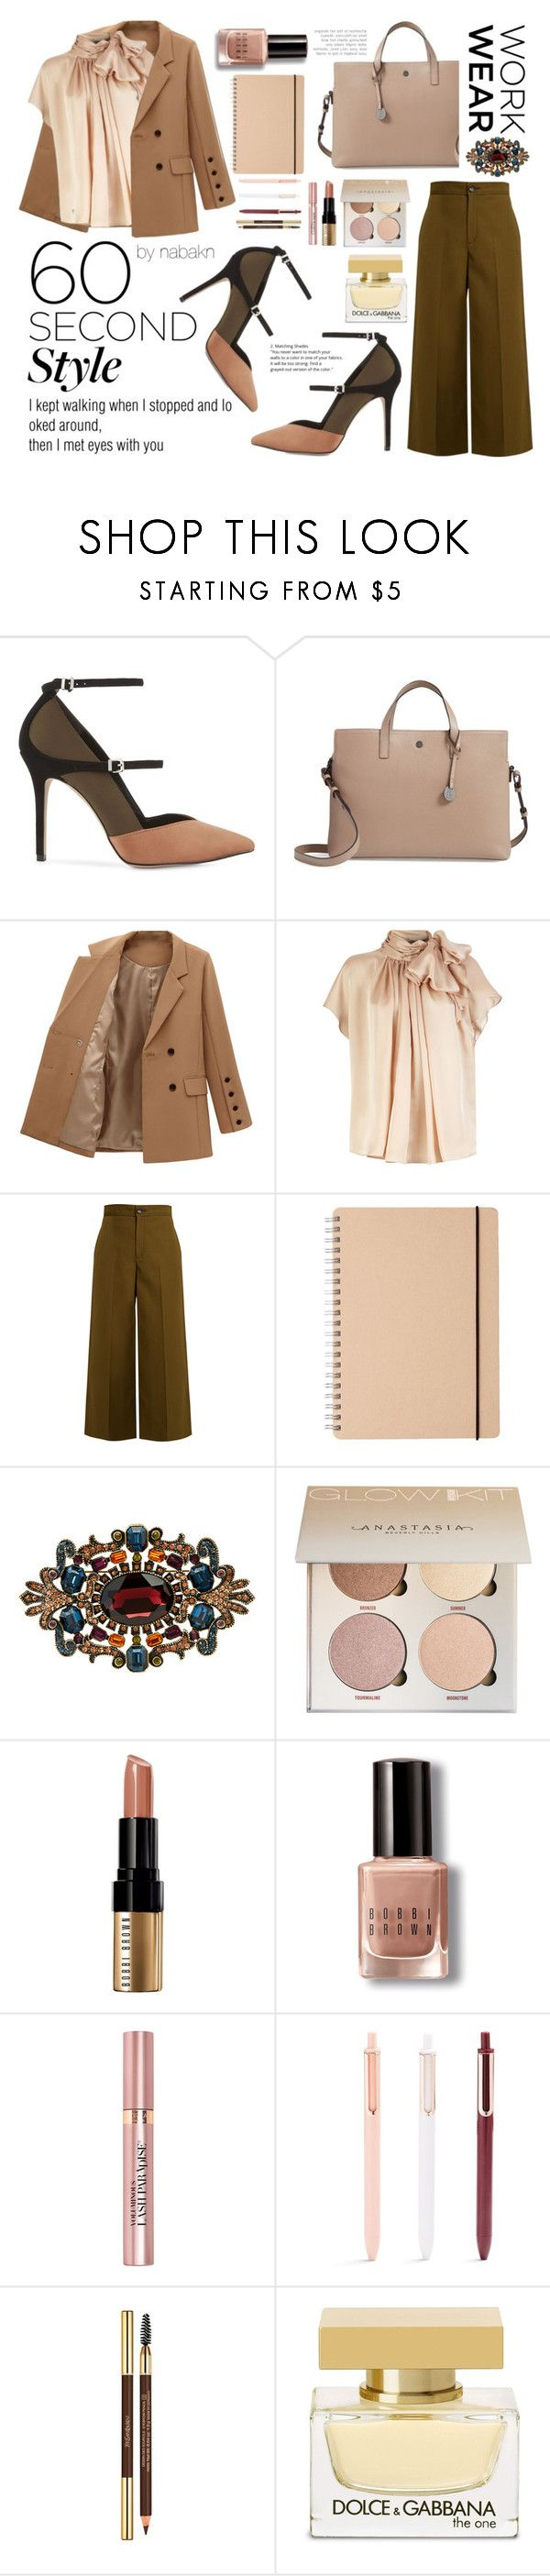 """Dependable Ms. Brownie"" by kagamineai ❤ liked on Polyvore featuring Reiss, Lodis, Joseph, Heidi Daus, Bobbi Brown Cosmetics, L'Oréal Paris, Yves Saint Laurent, Dolce&Gabbana, WorkWear and 60secondstyle"